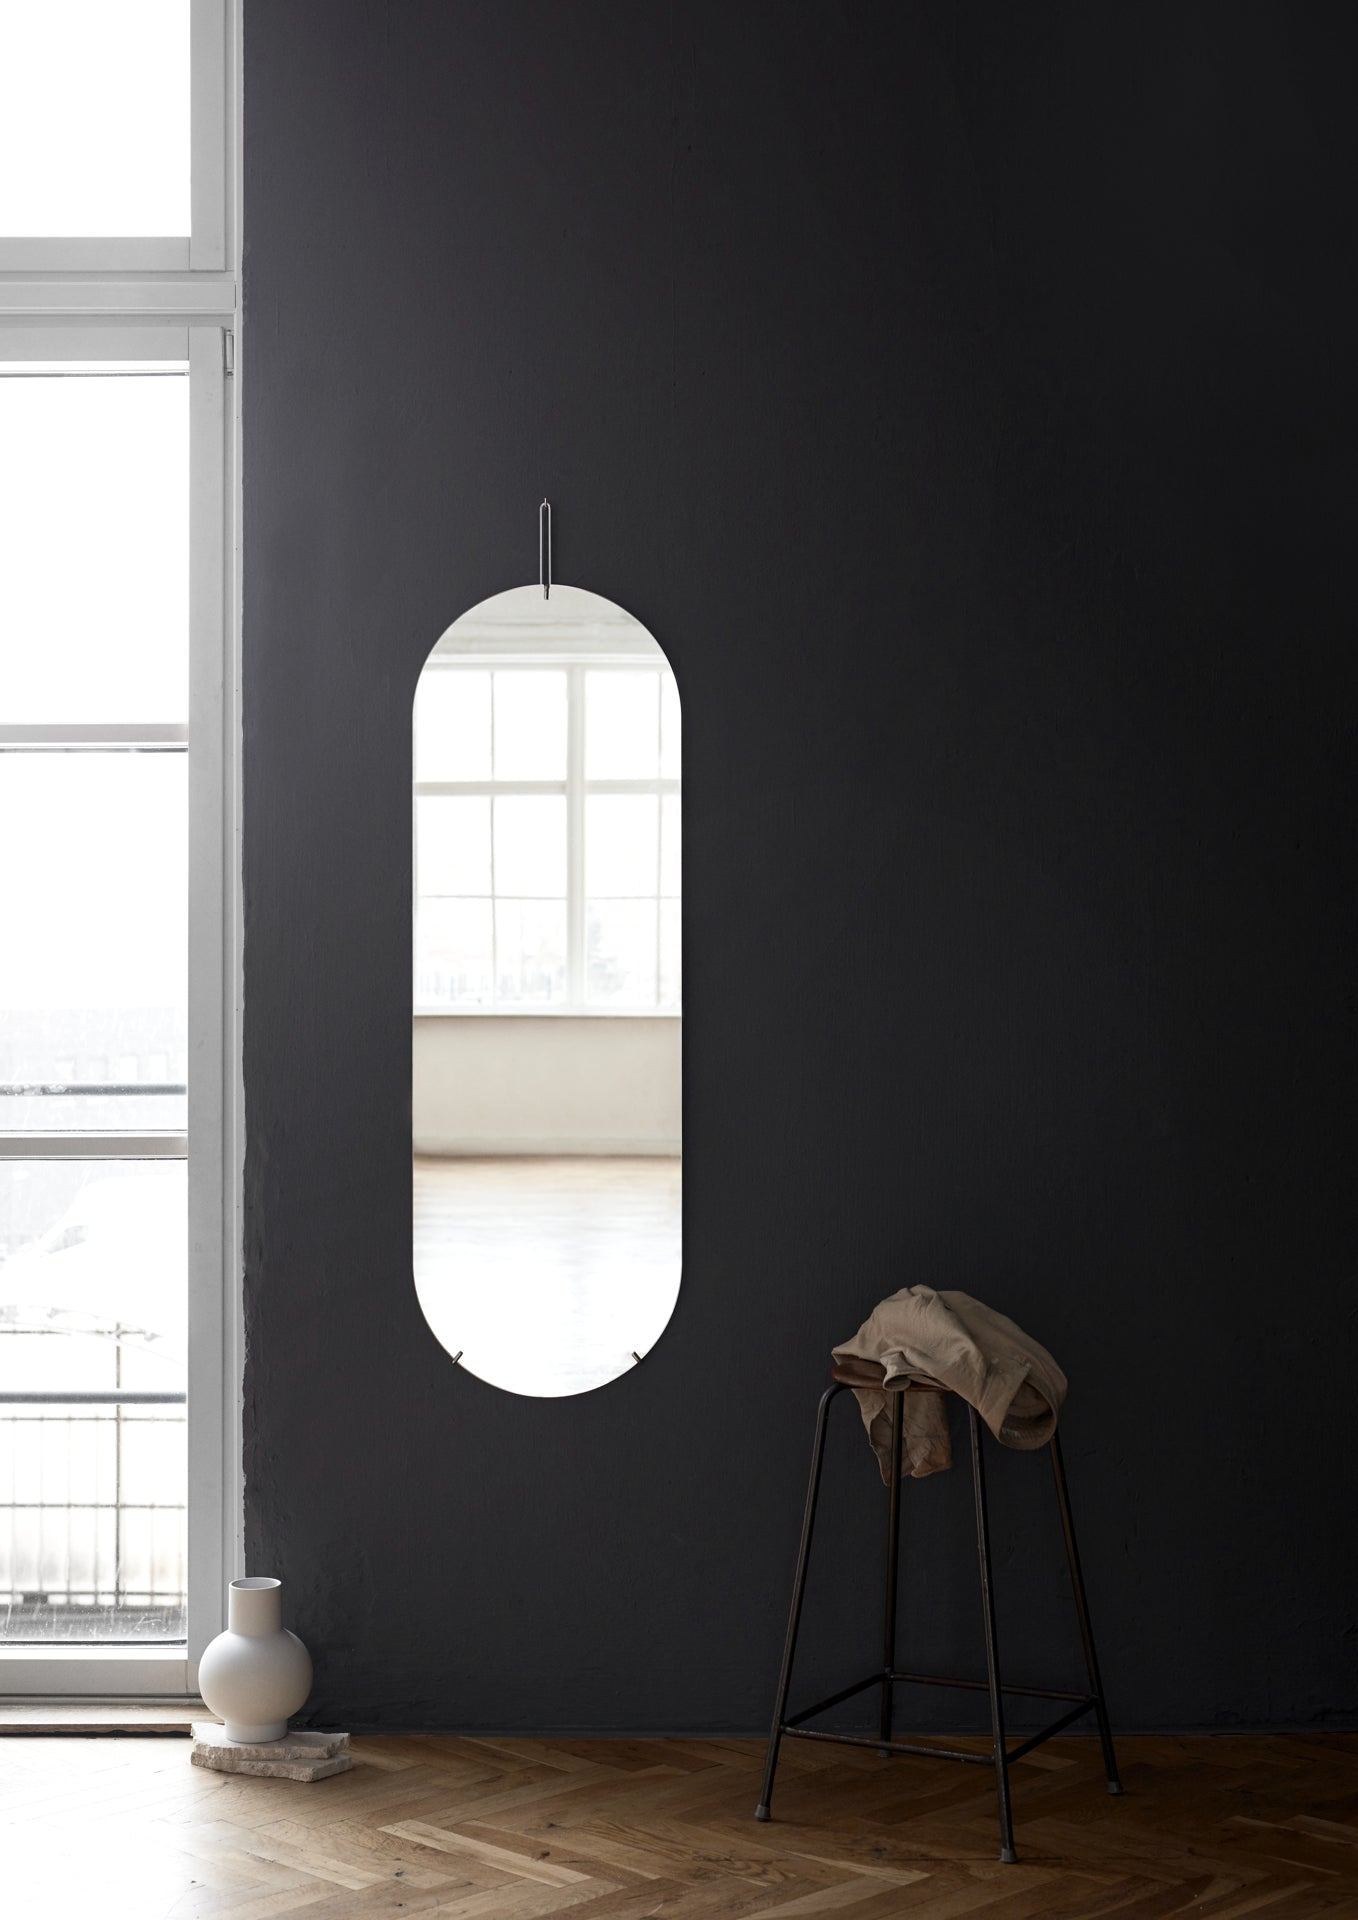 Tall Wall Mirror-Moebe-black-danish-interior-furniture-denmark-Average-design-toronto-canada